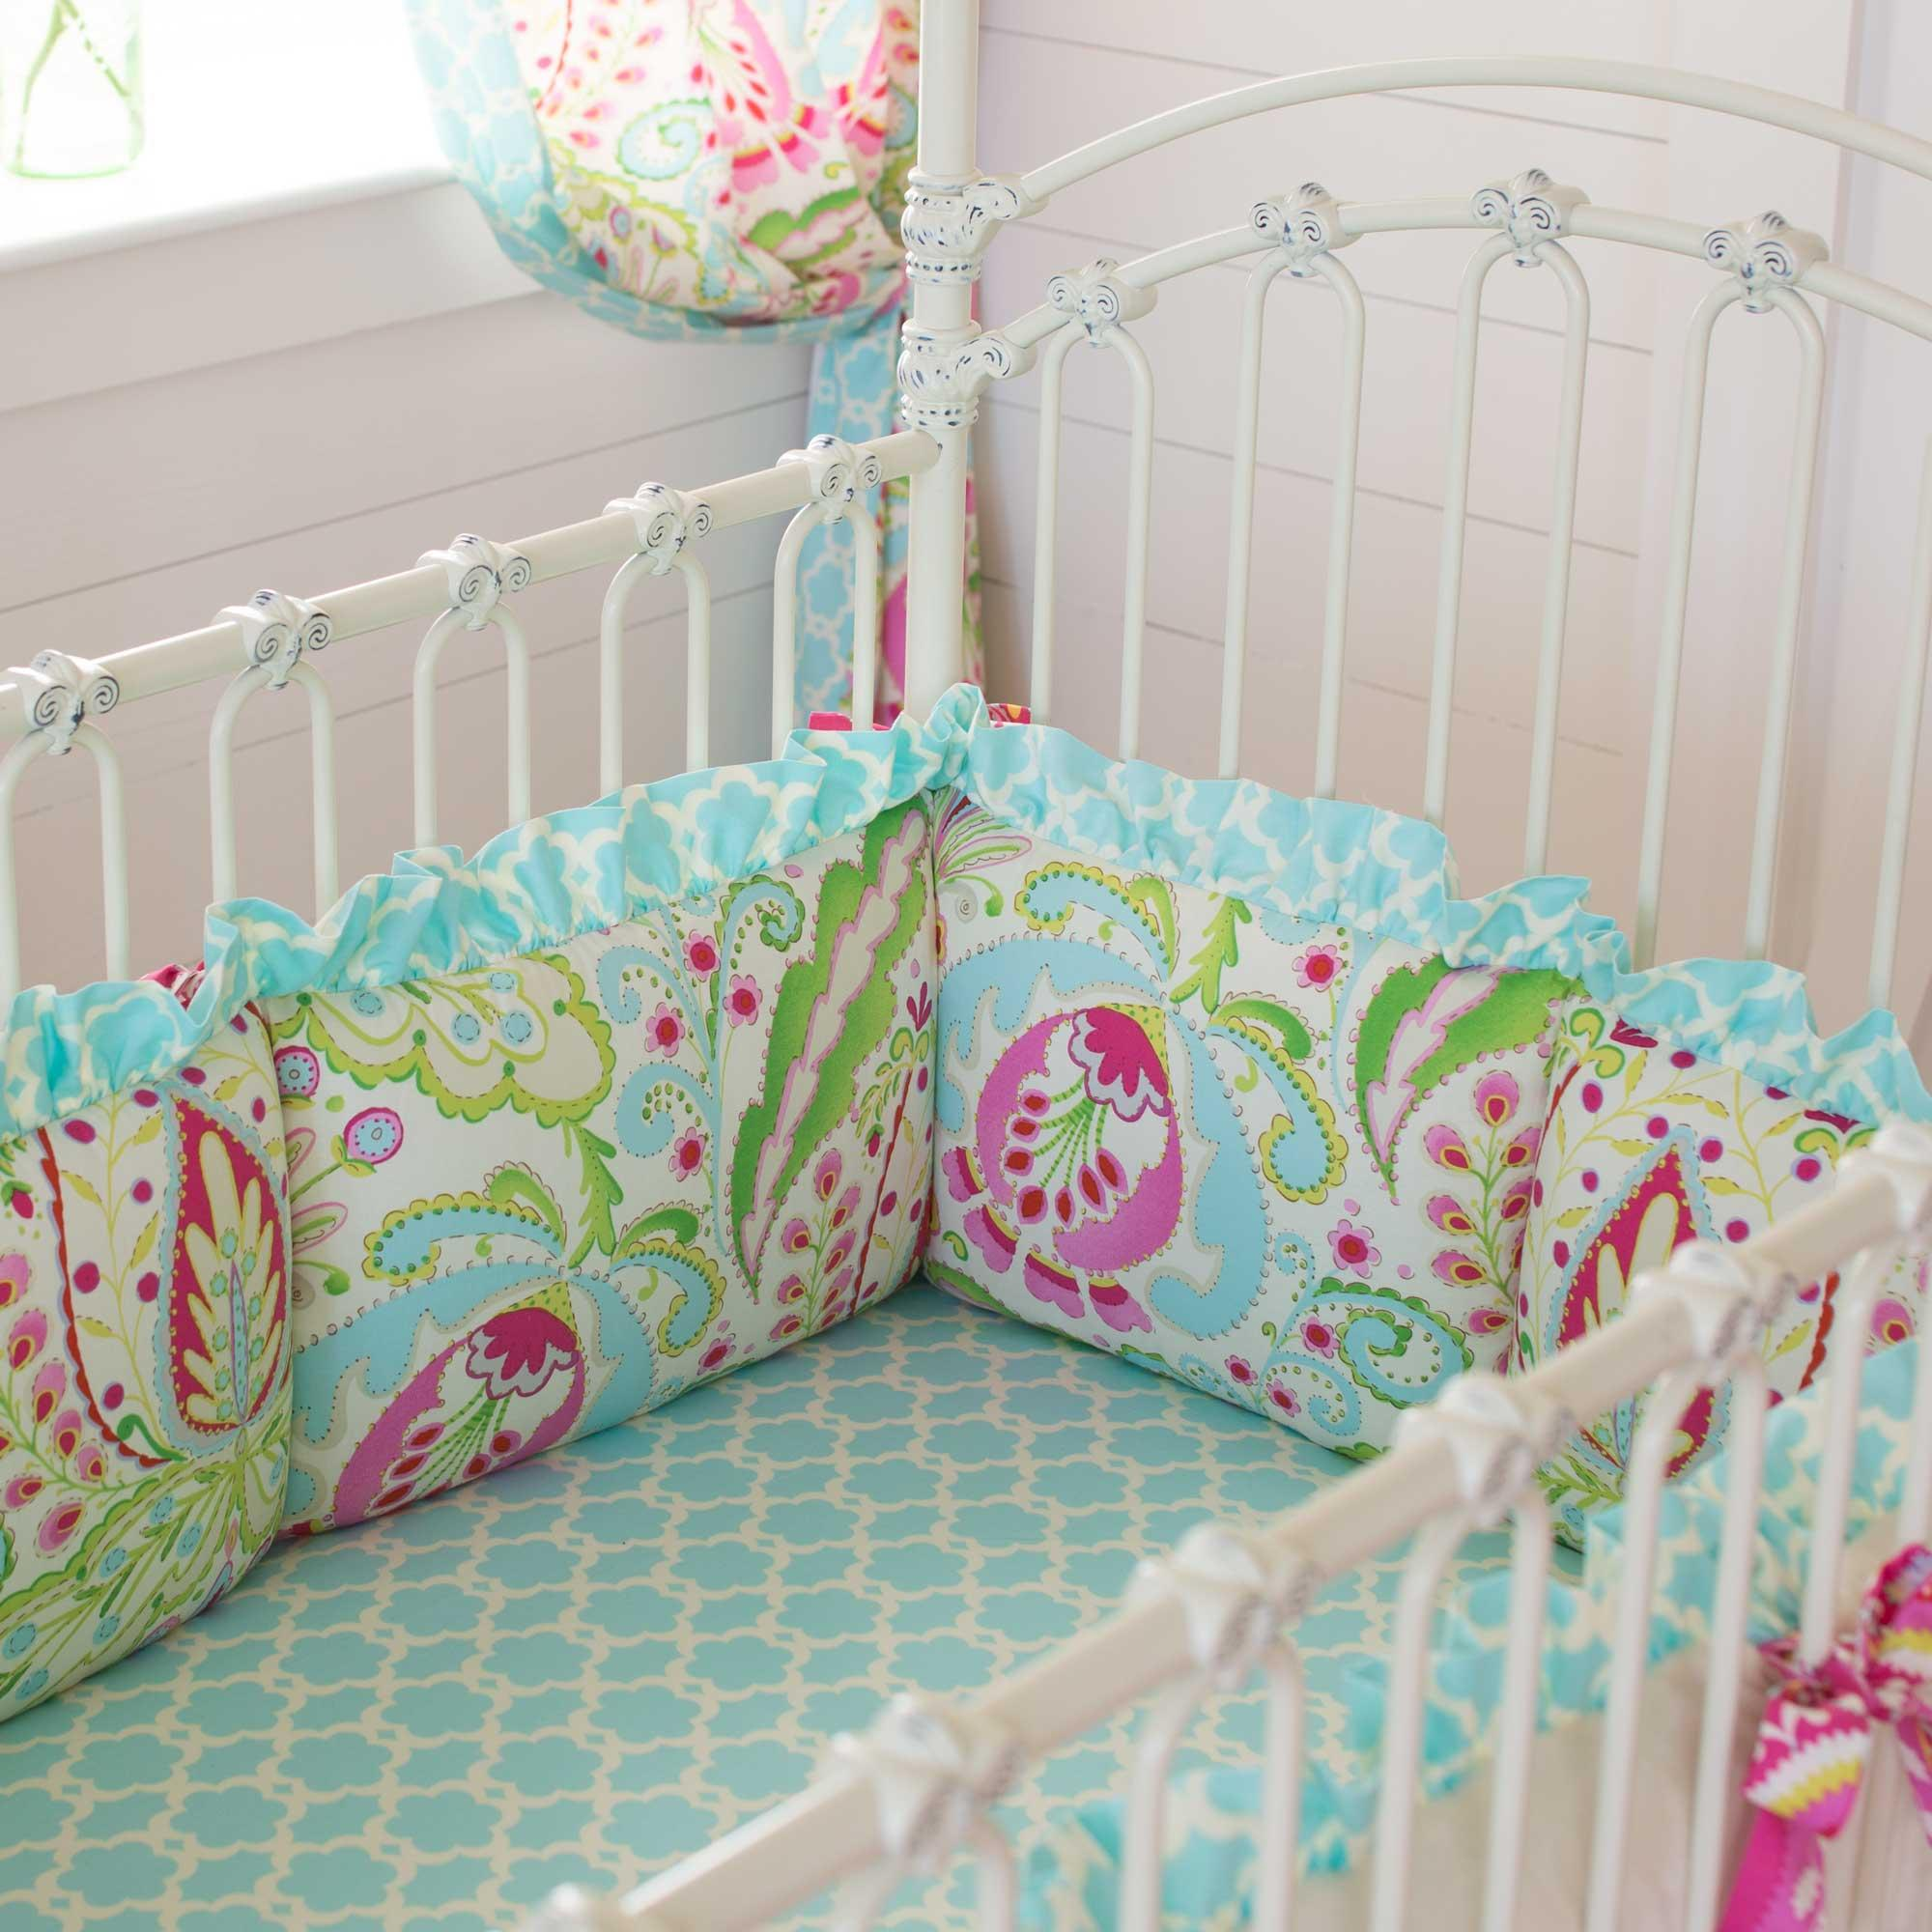 Crib Bumper To Ensure Infant S Safe And Sound Sleep